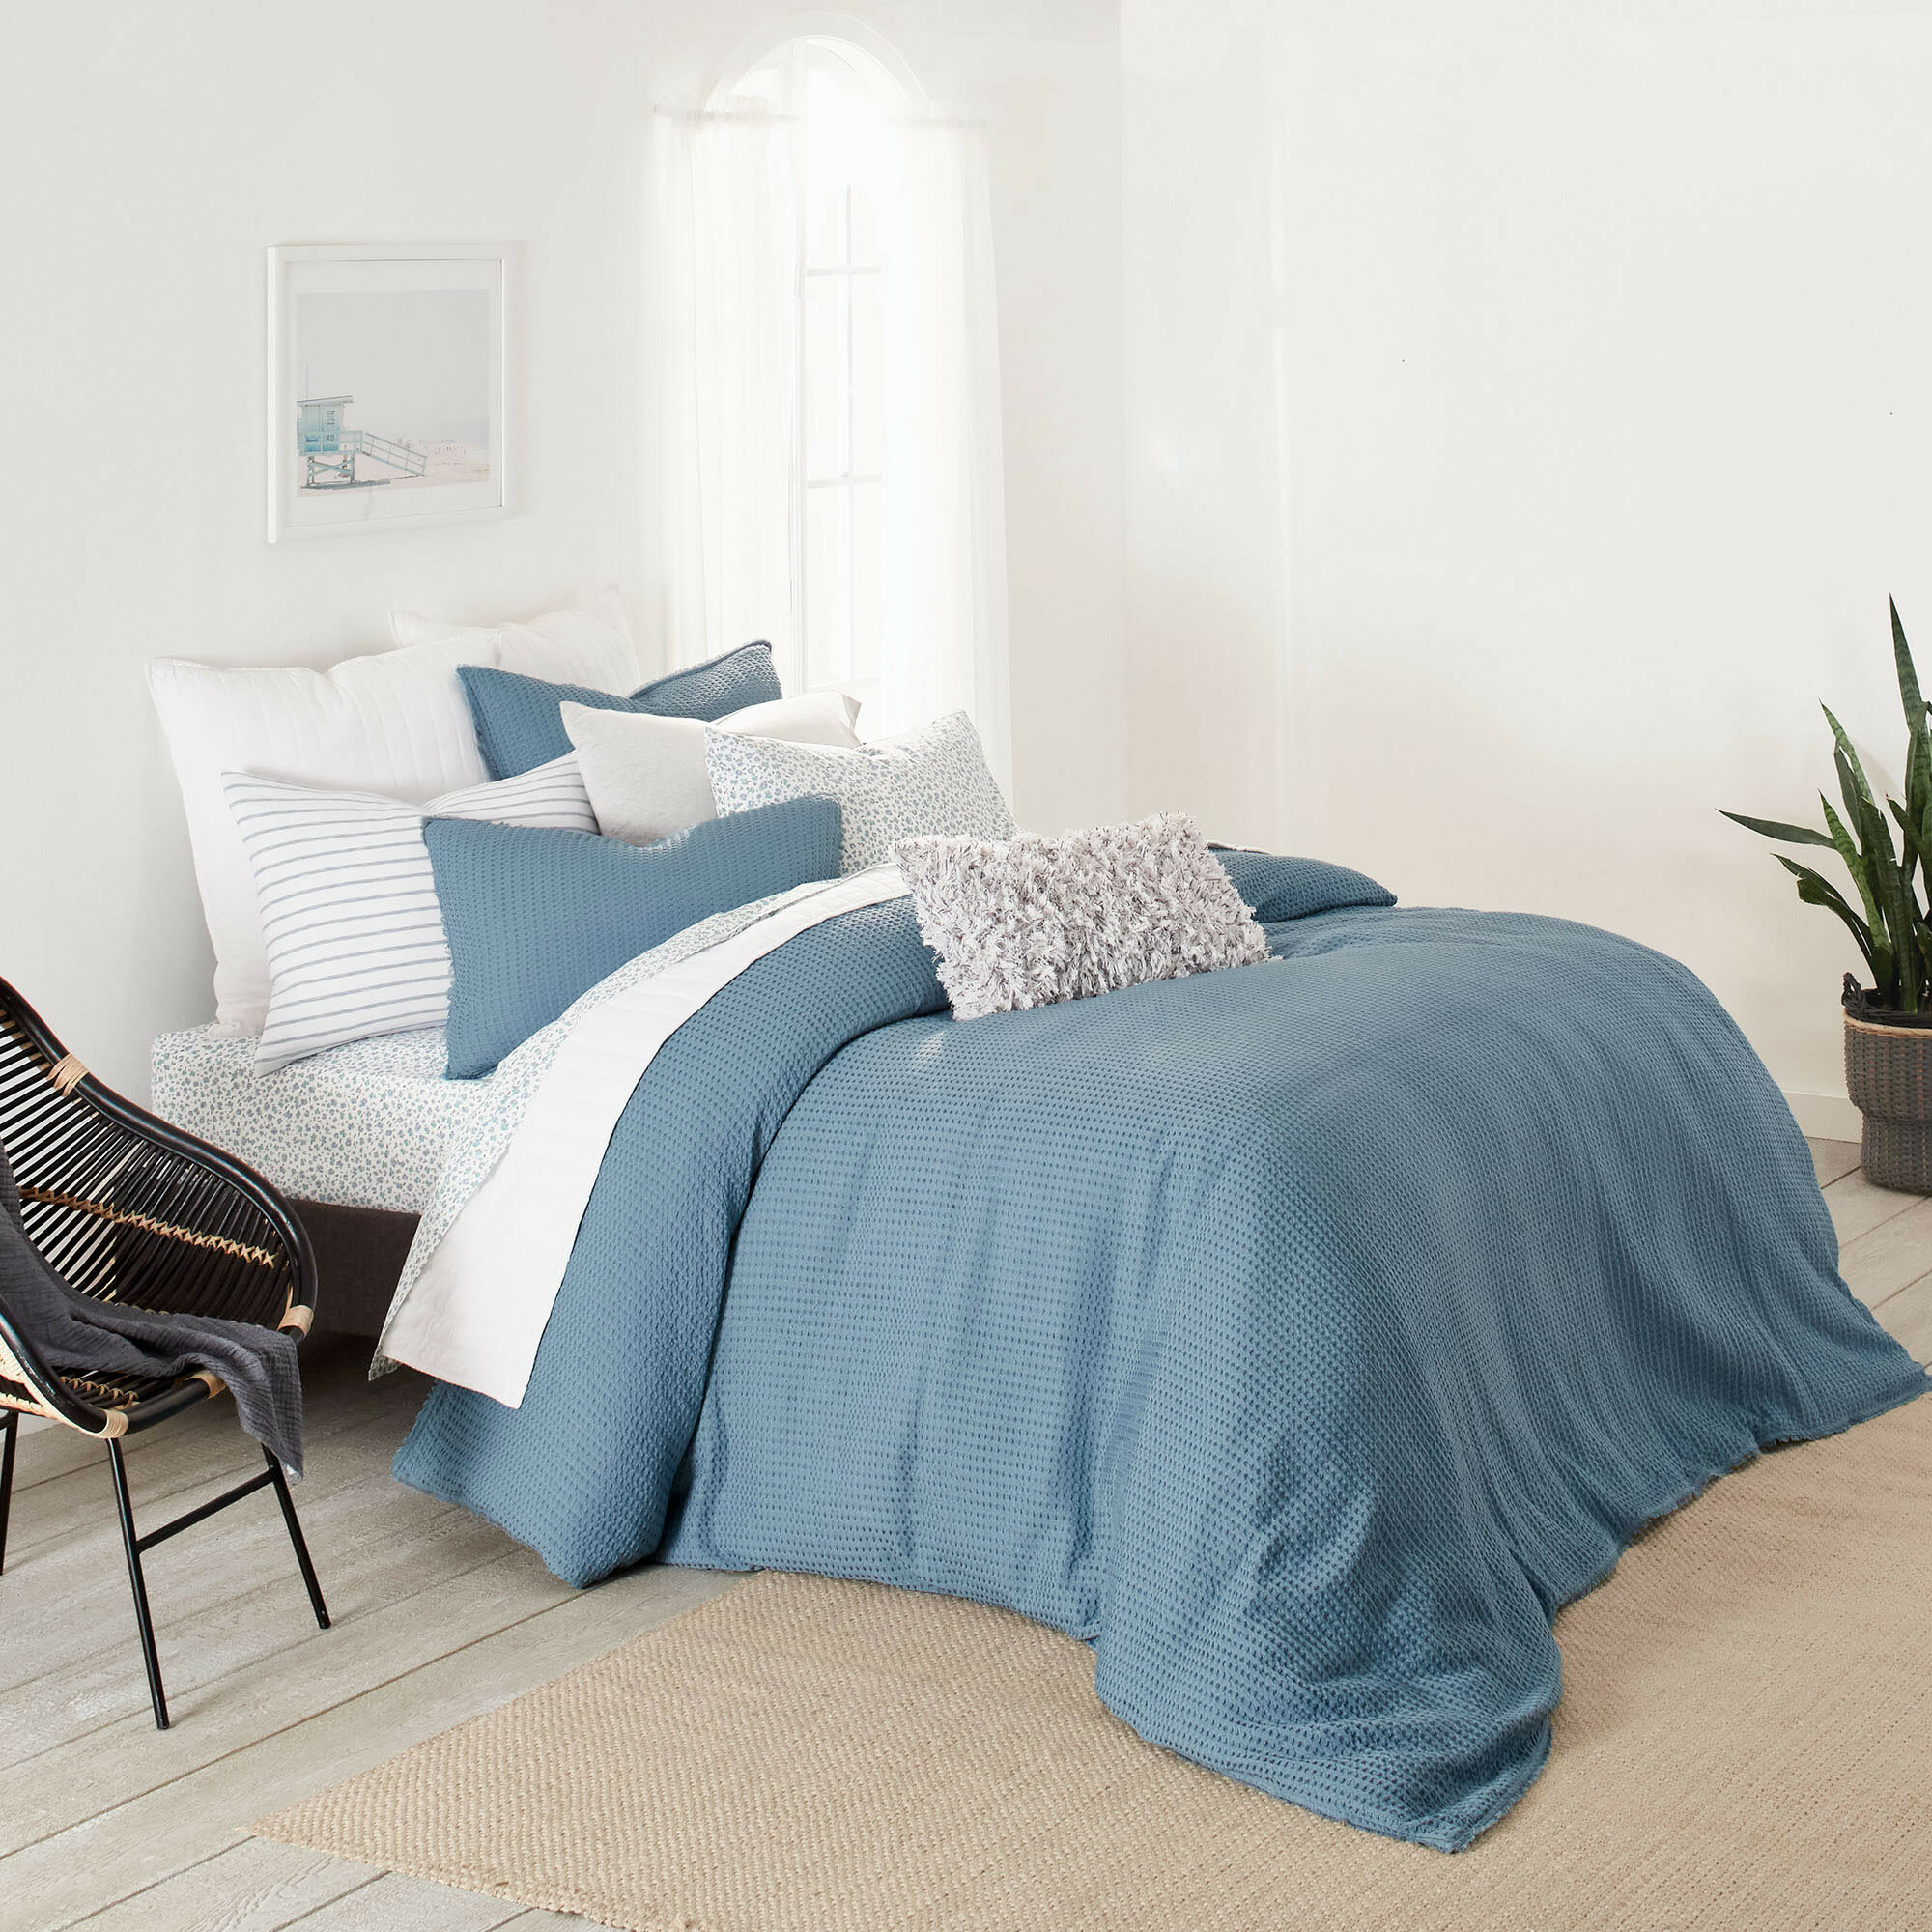 Splendid Home Topanga Splendid Home Duvet Cover Set Wayfair